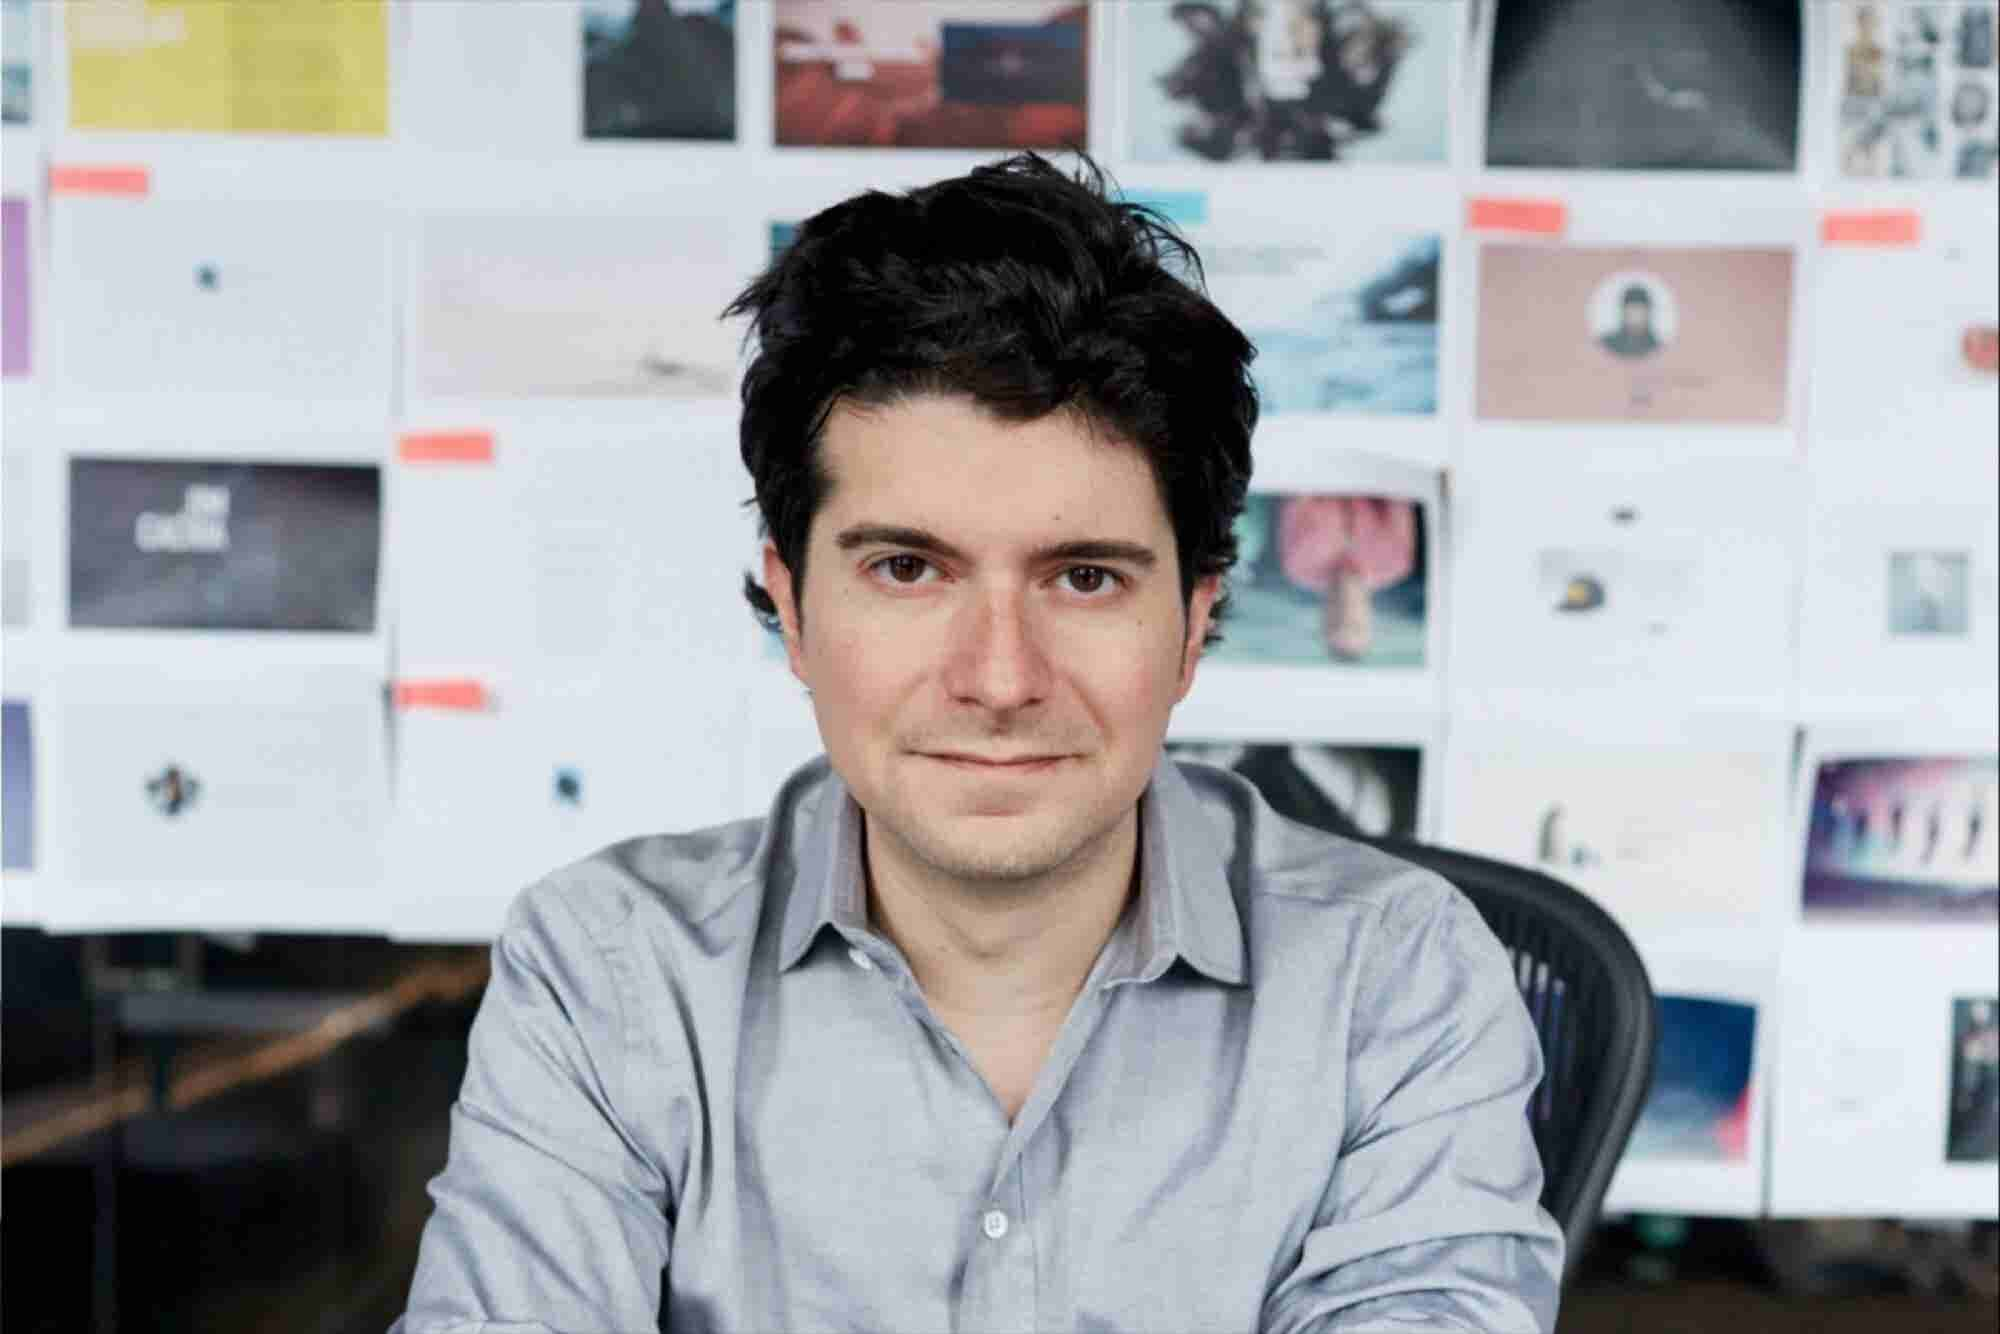 How Squarespace Went From a Dorm-Room Project to a $100 Million Web Publishing Platform